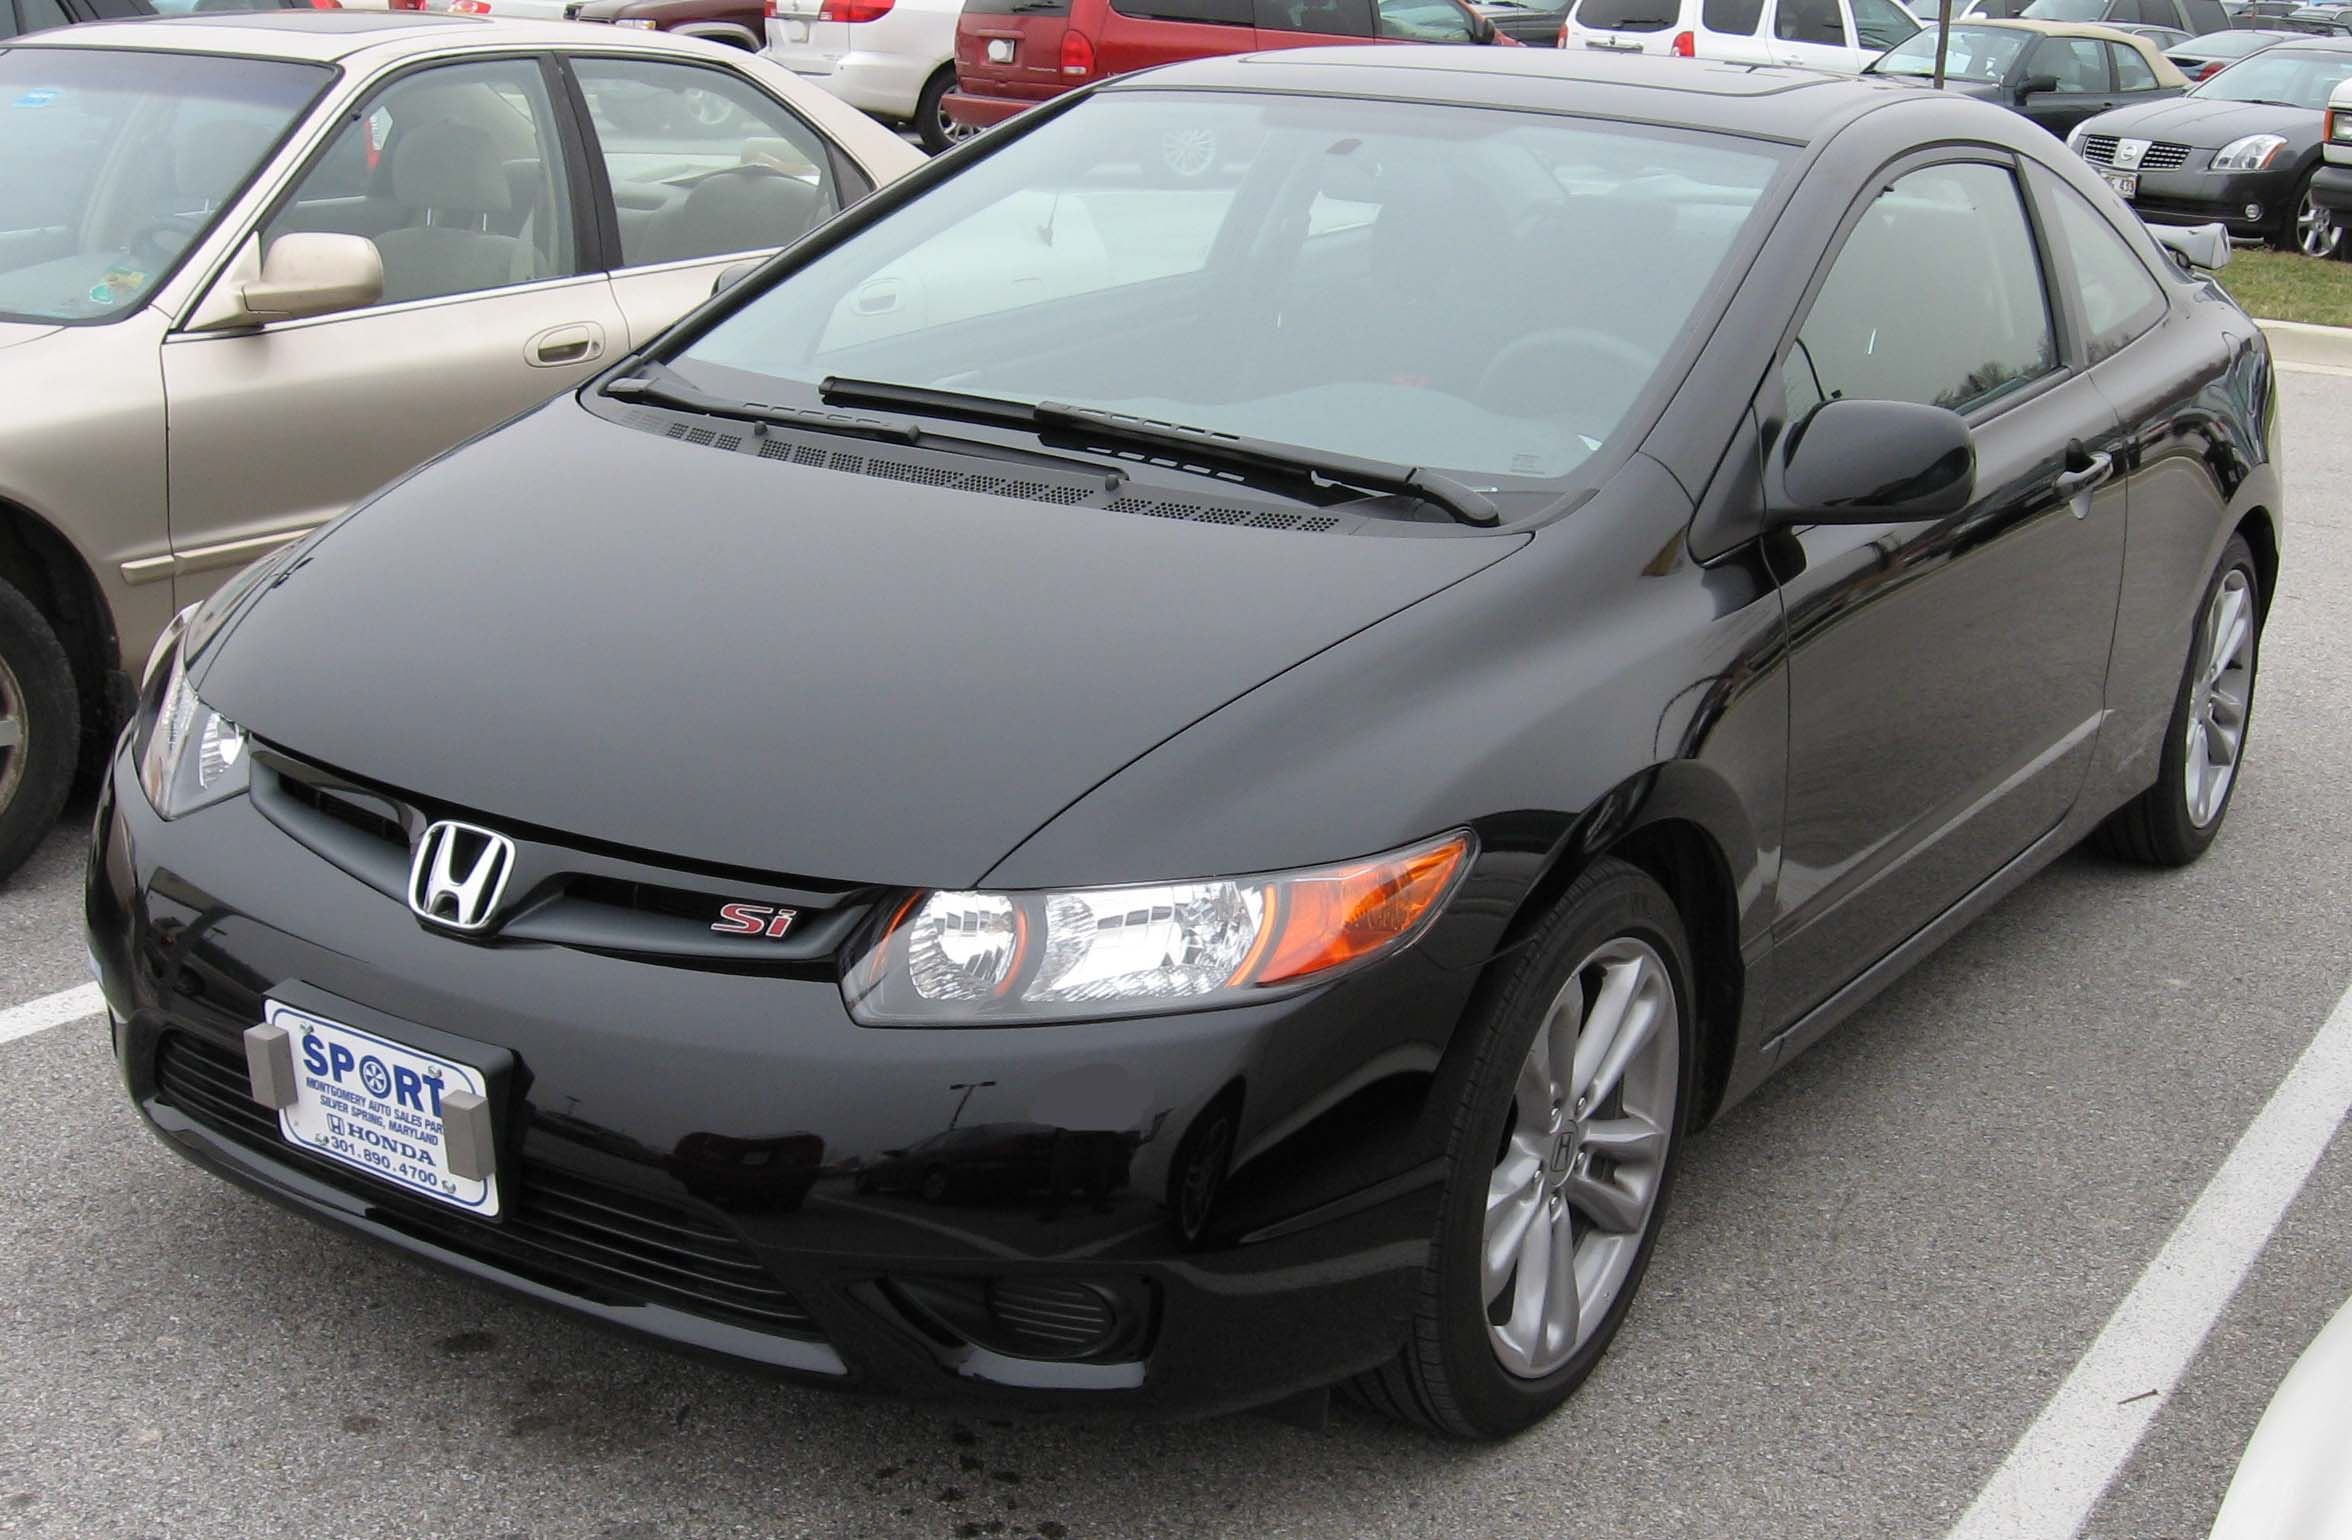 File 06 07 Honda Civic Si Coupe Jpg Wikimedia Commons